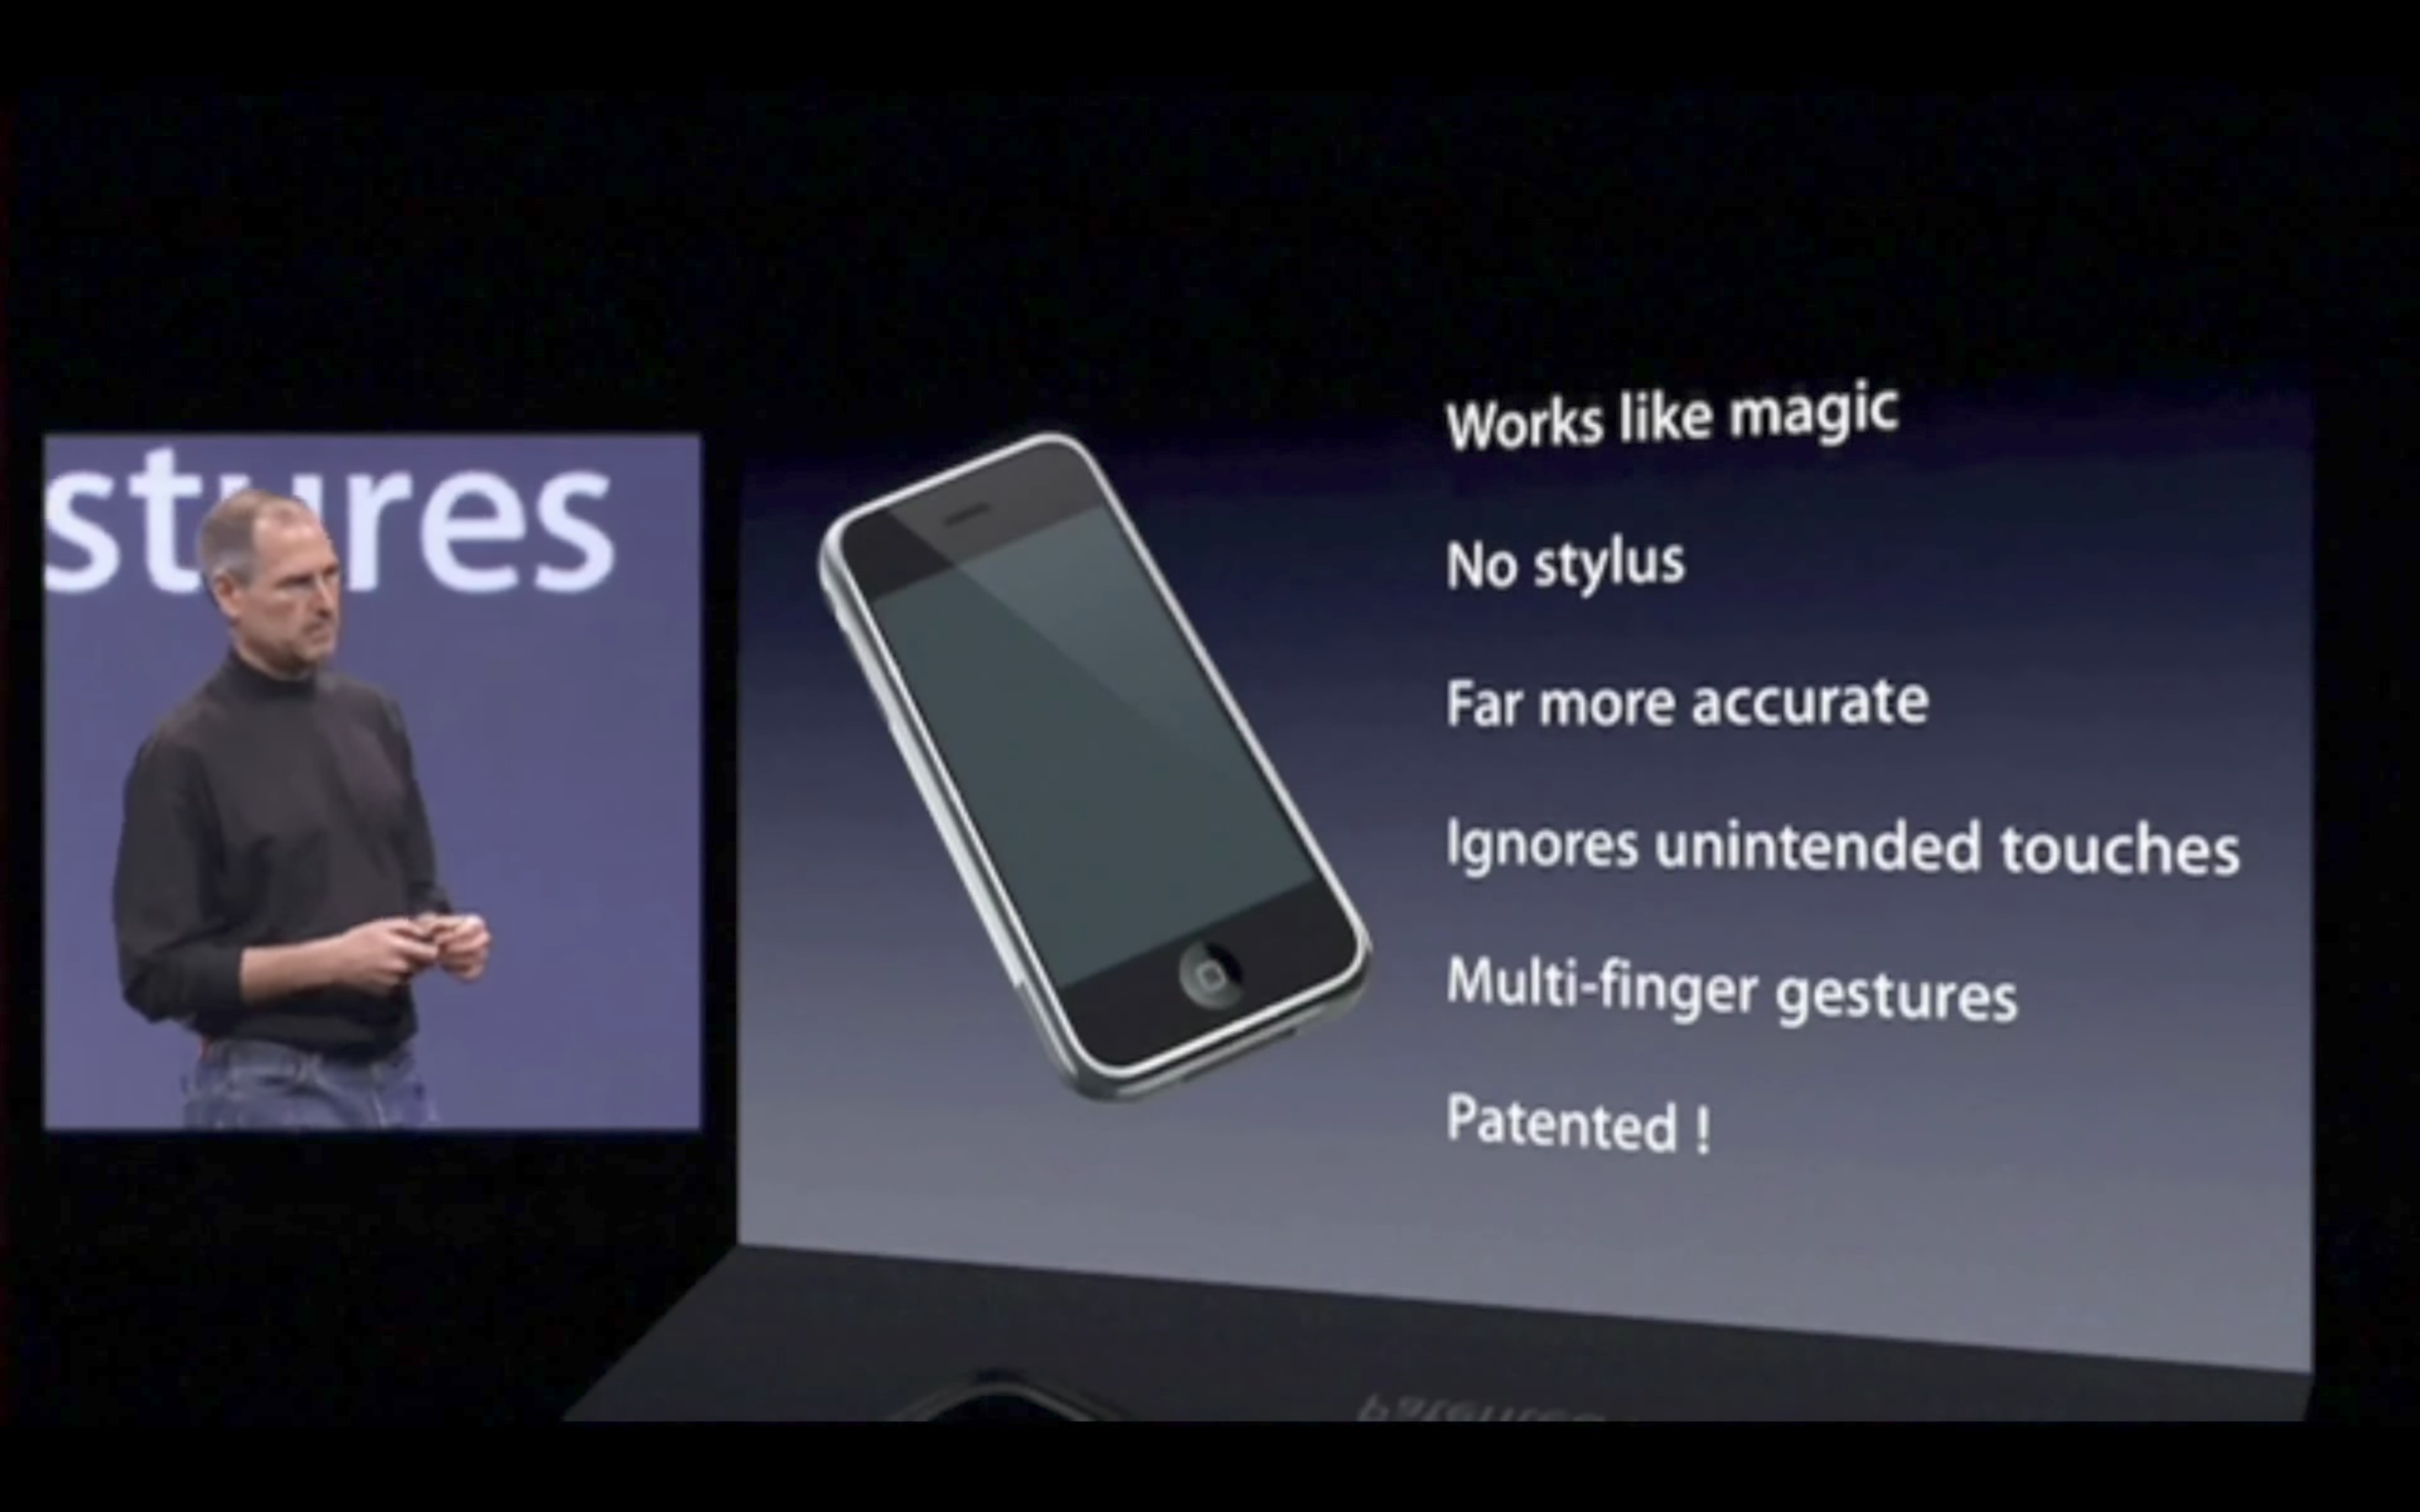 Original iPhone screen features